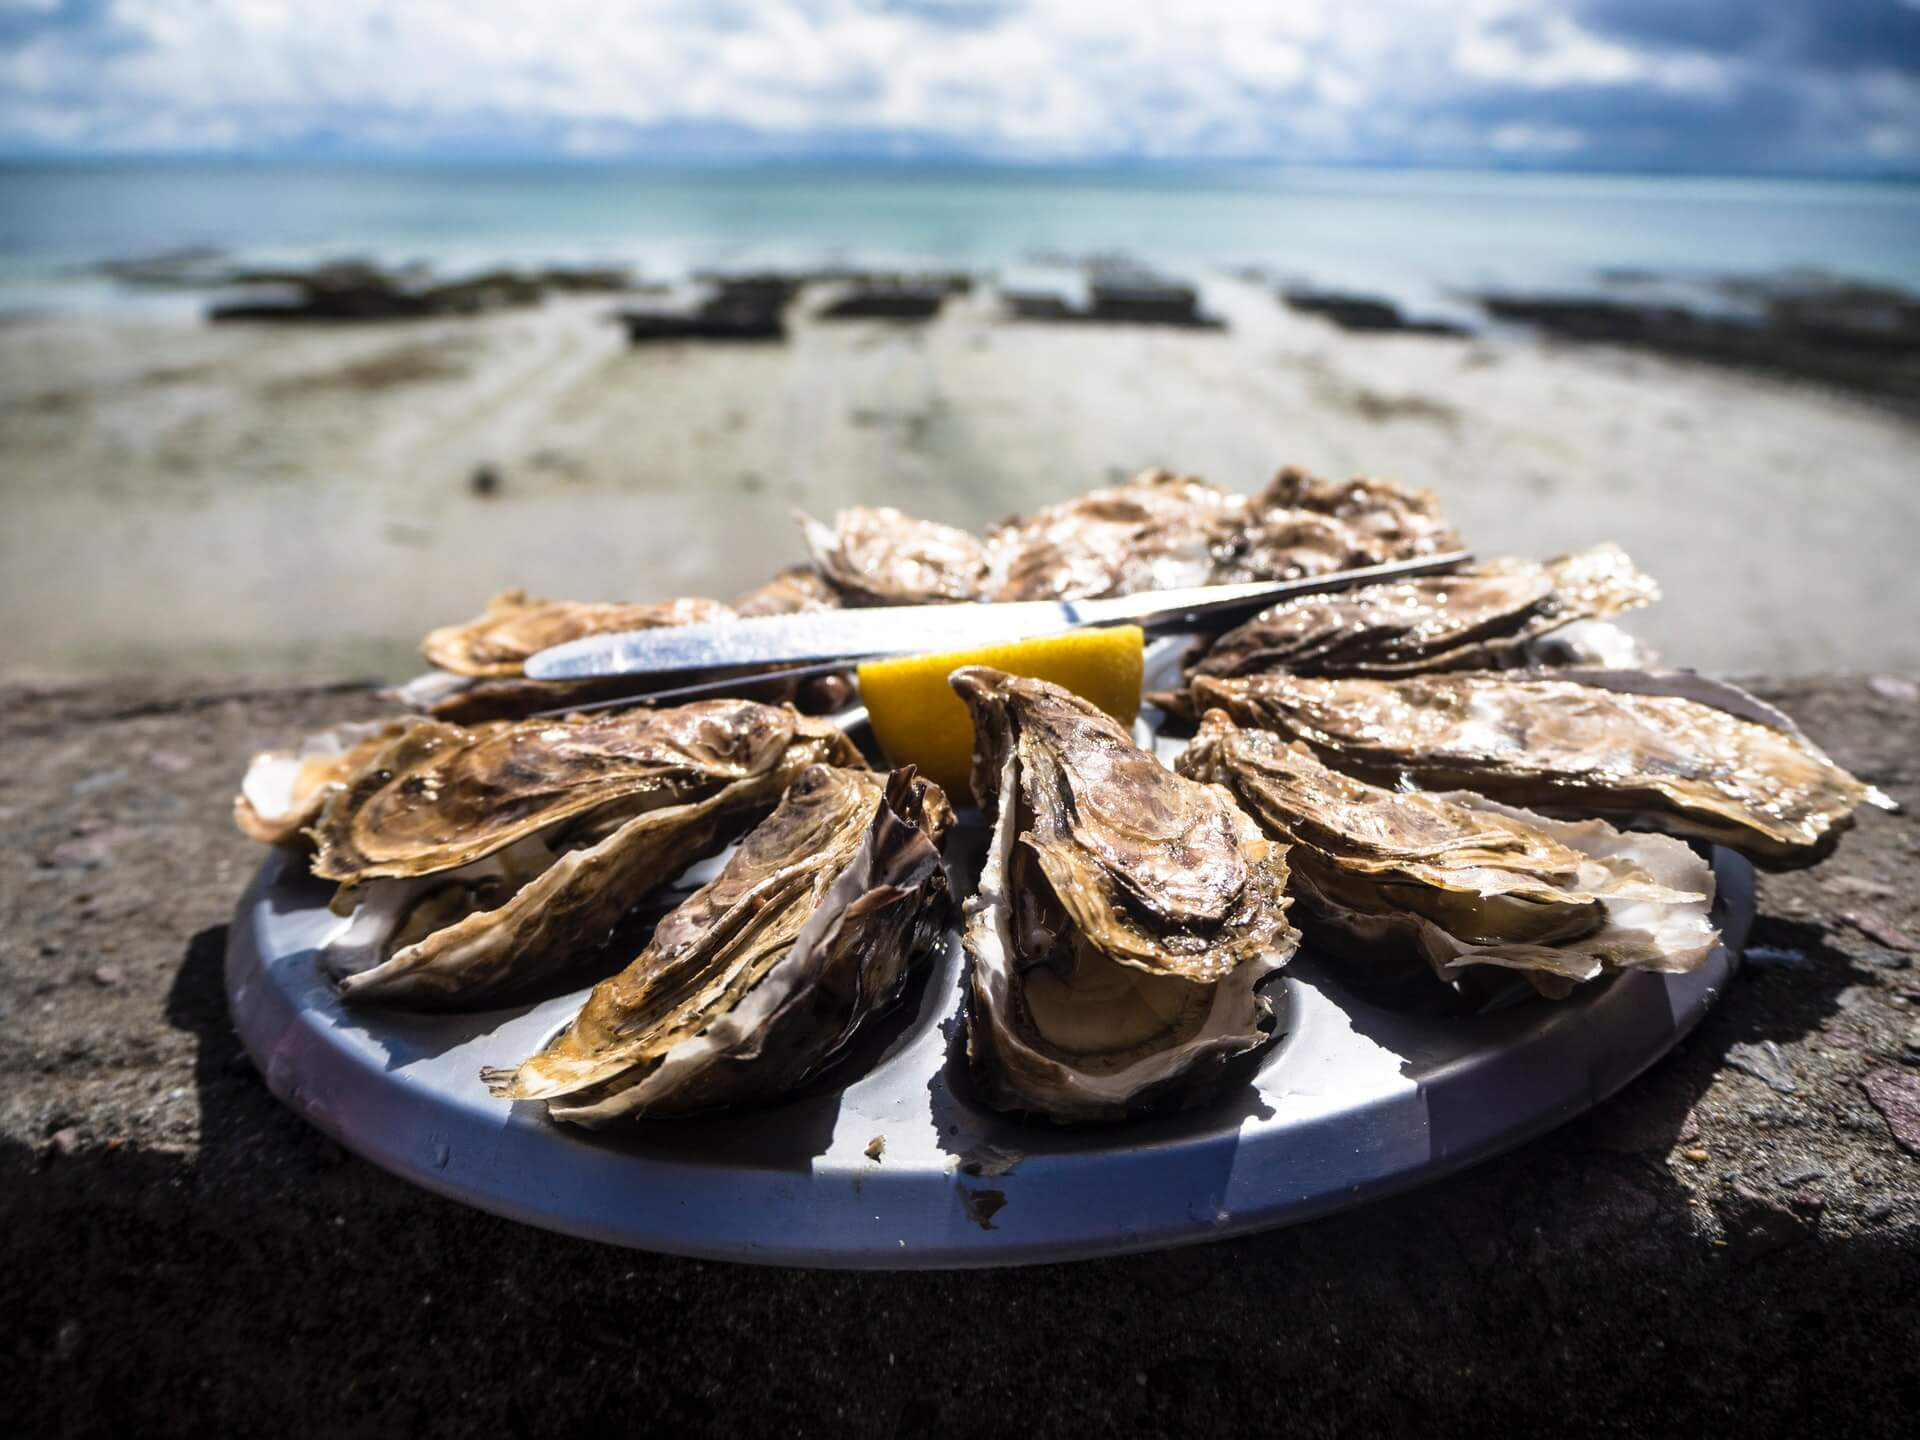 cooked oysters arranged in a circle on a plate placed near the beach